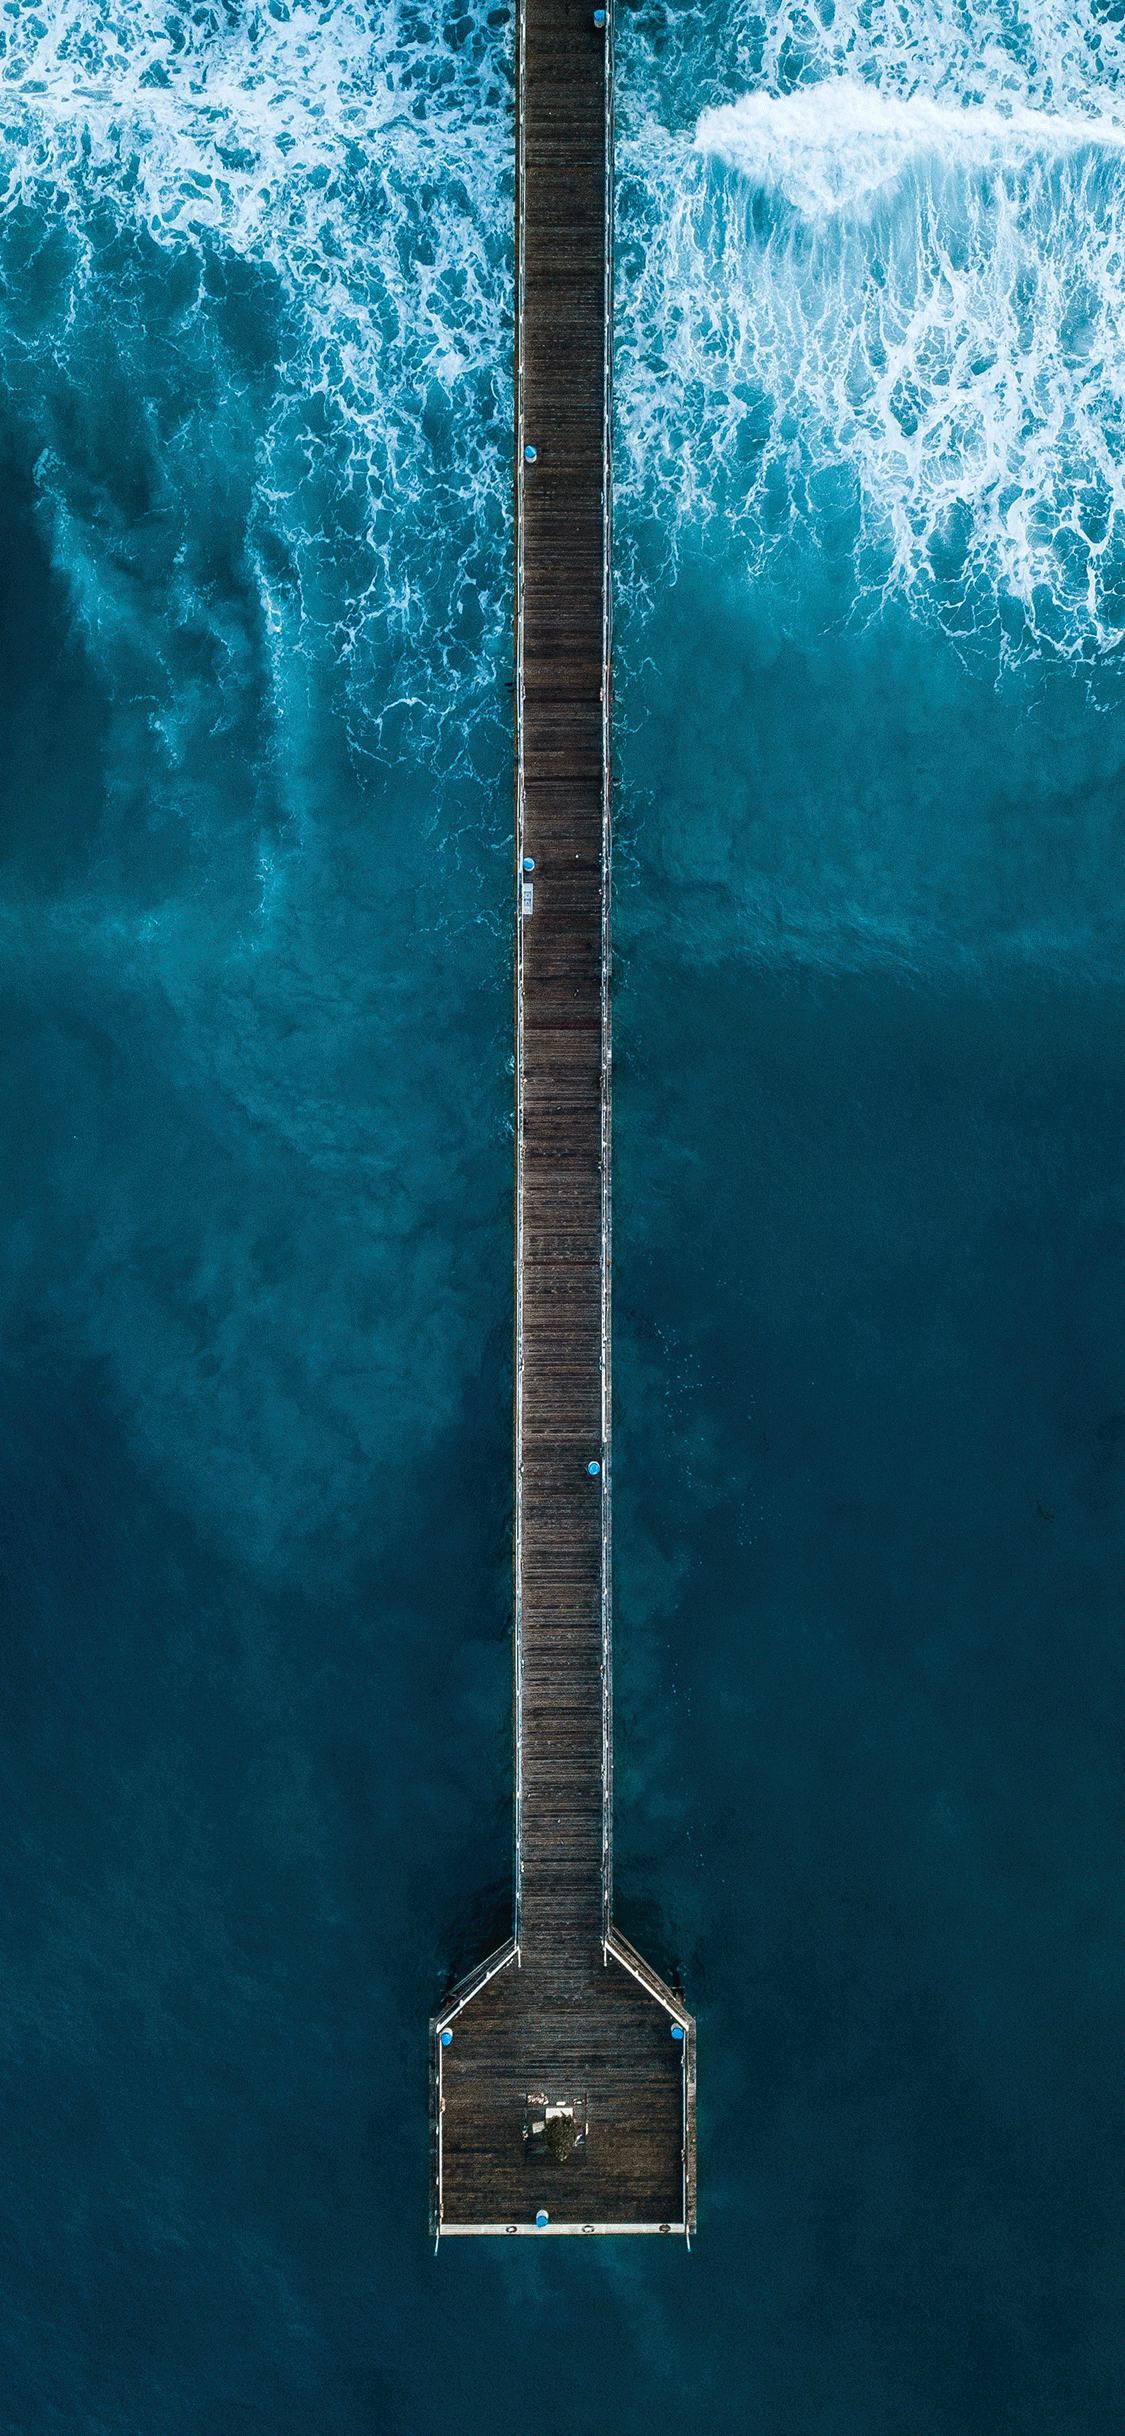 iPhone wallpaper aerial photo bridge Fonds d'écran iPhone du 04/10/2018